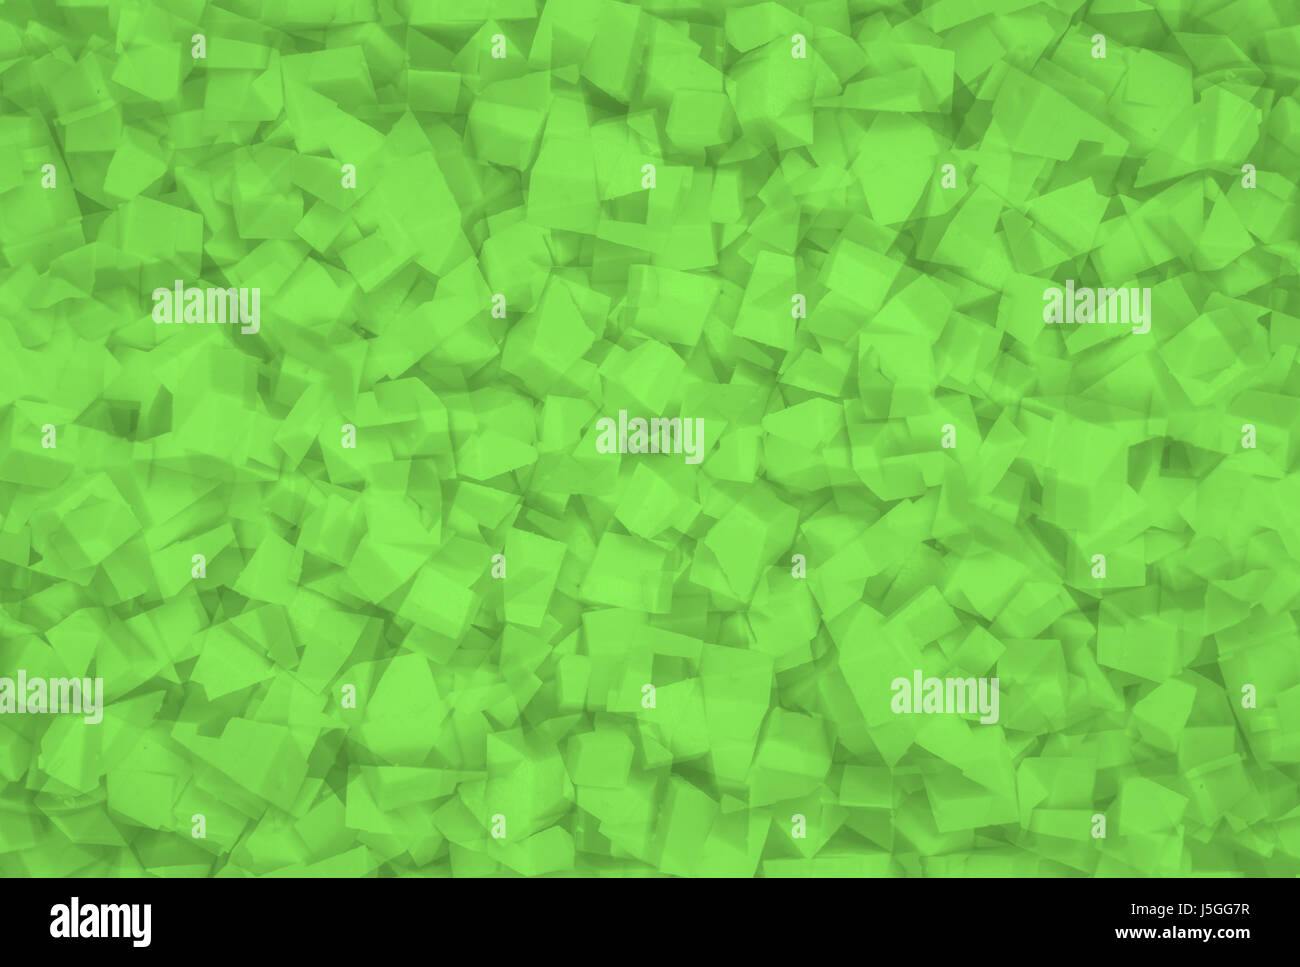 green abstract geometrical texture - Stock Image